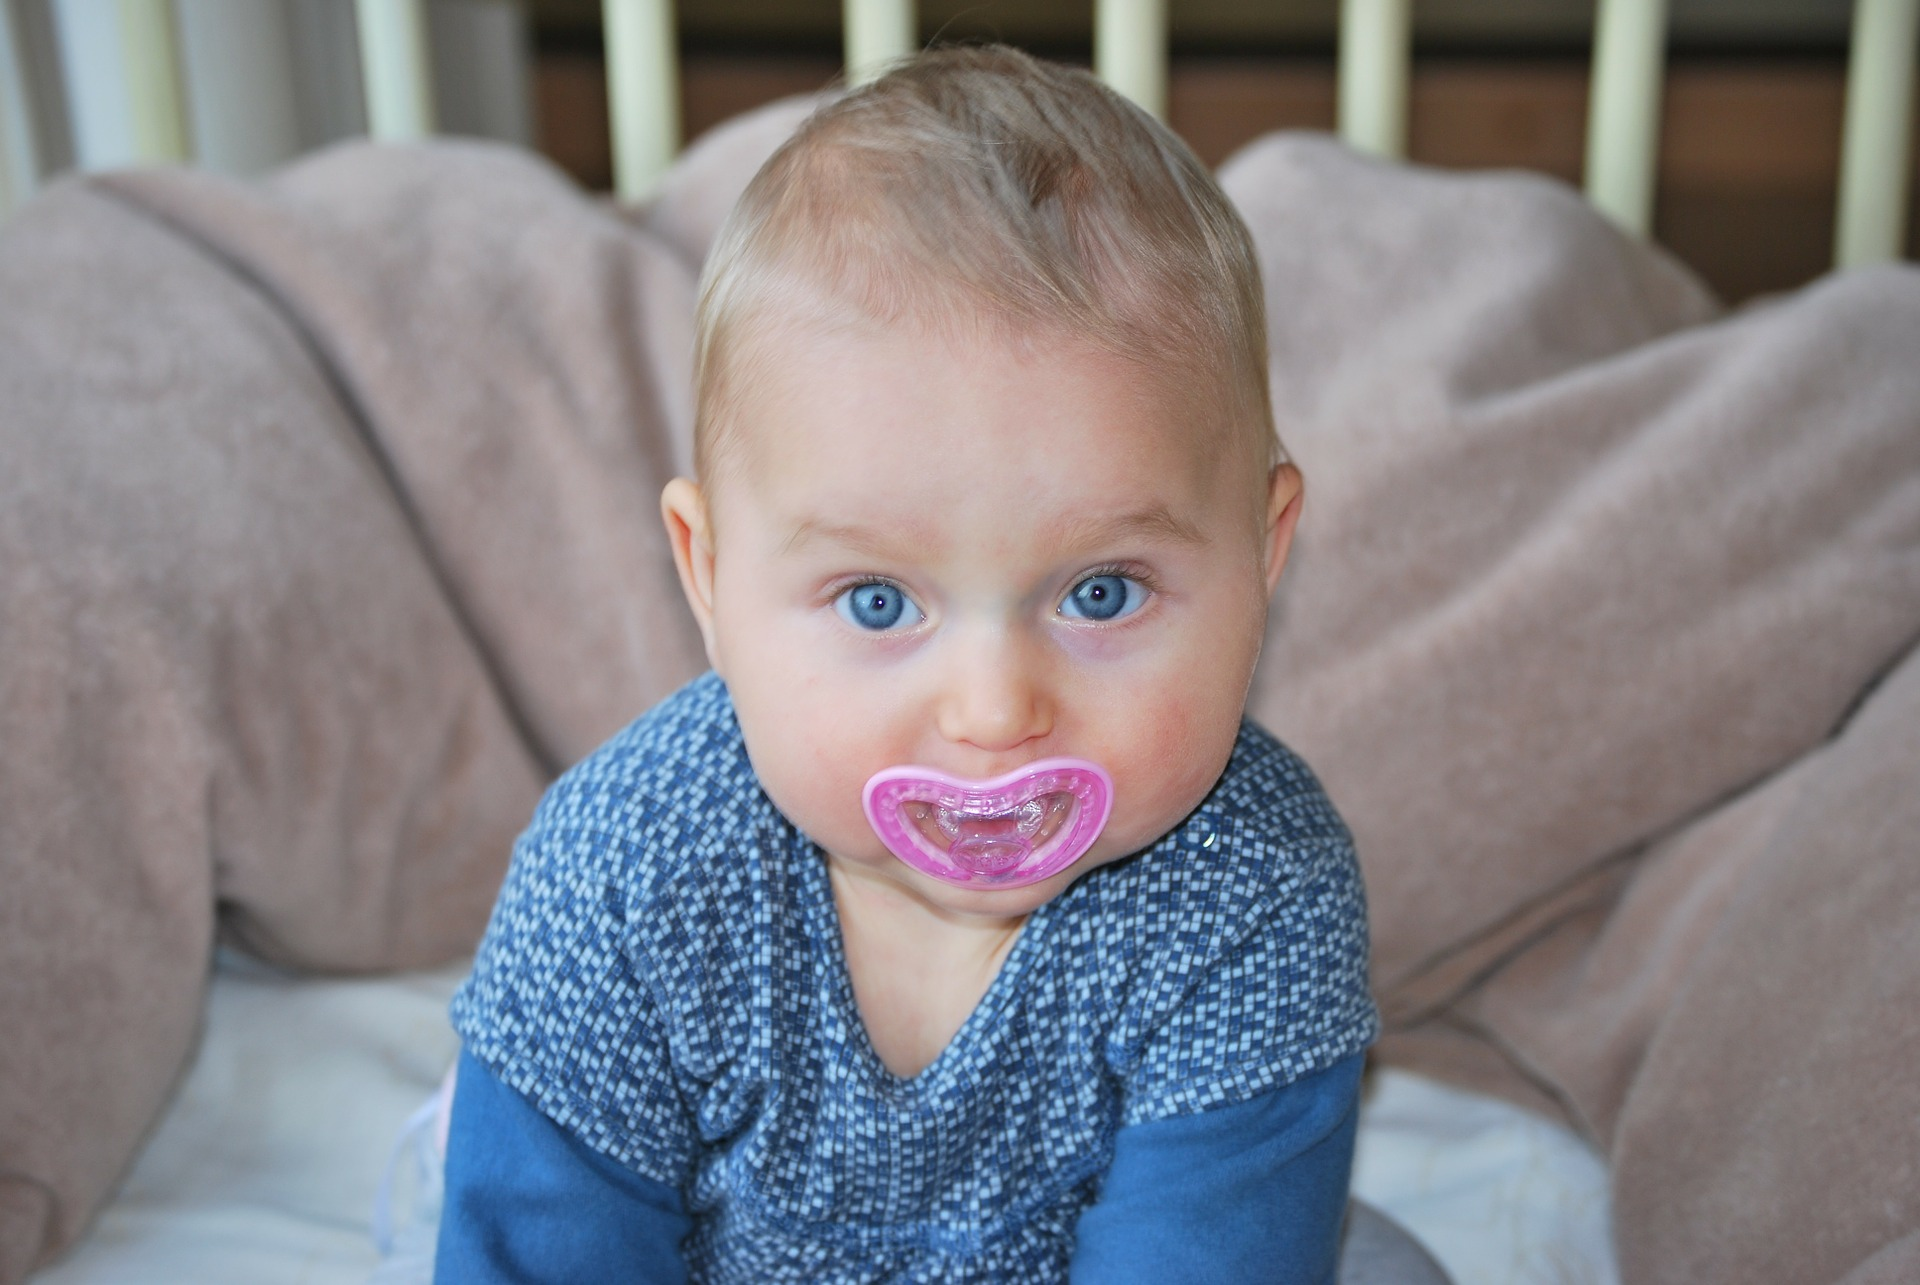 Not every baby needs a pacifier. Read on for more information about pacifier use.